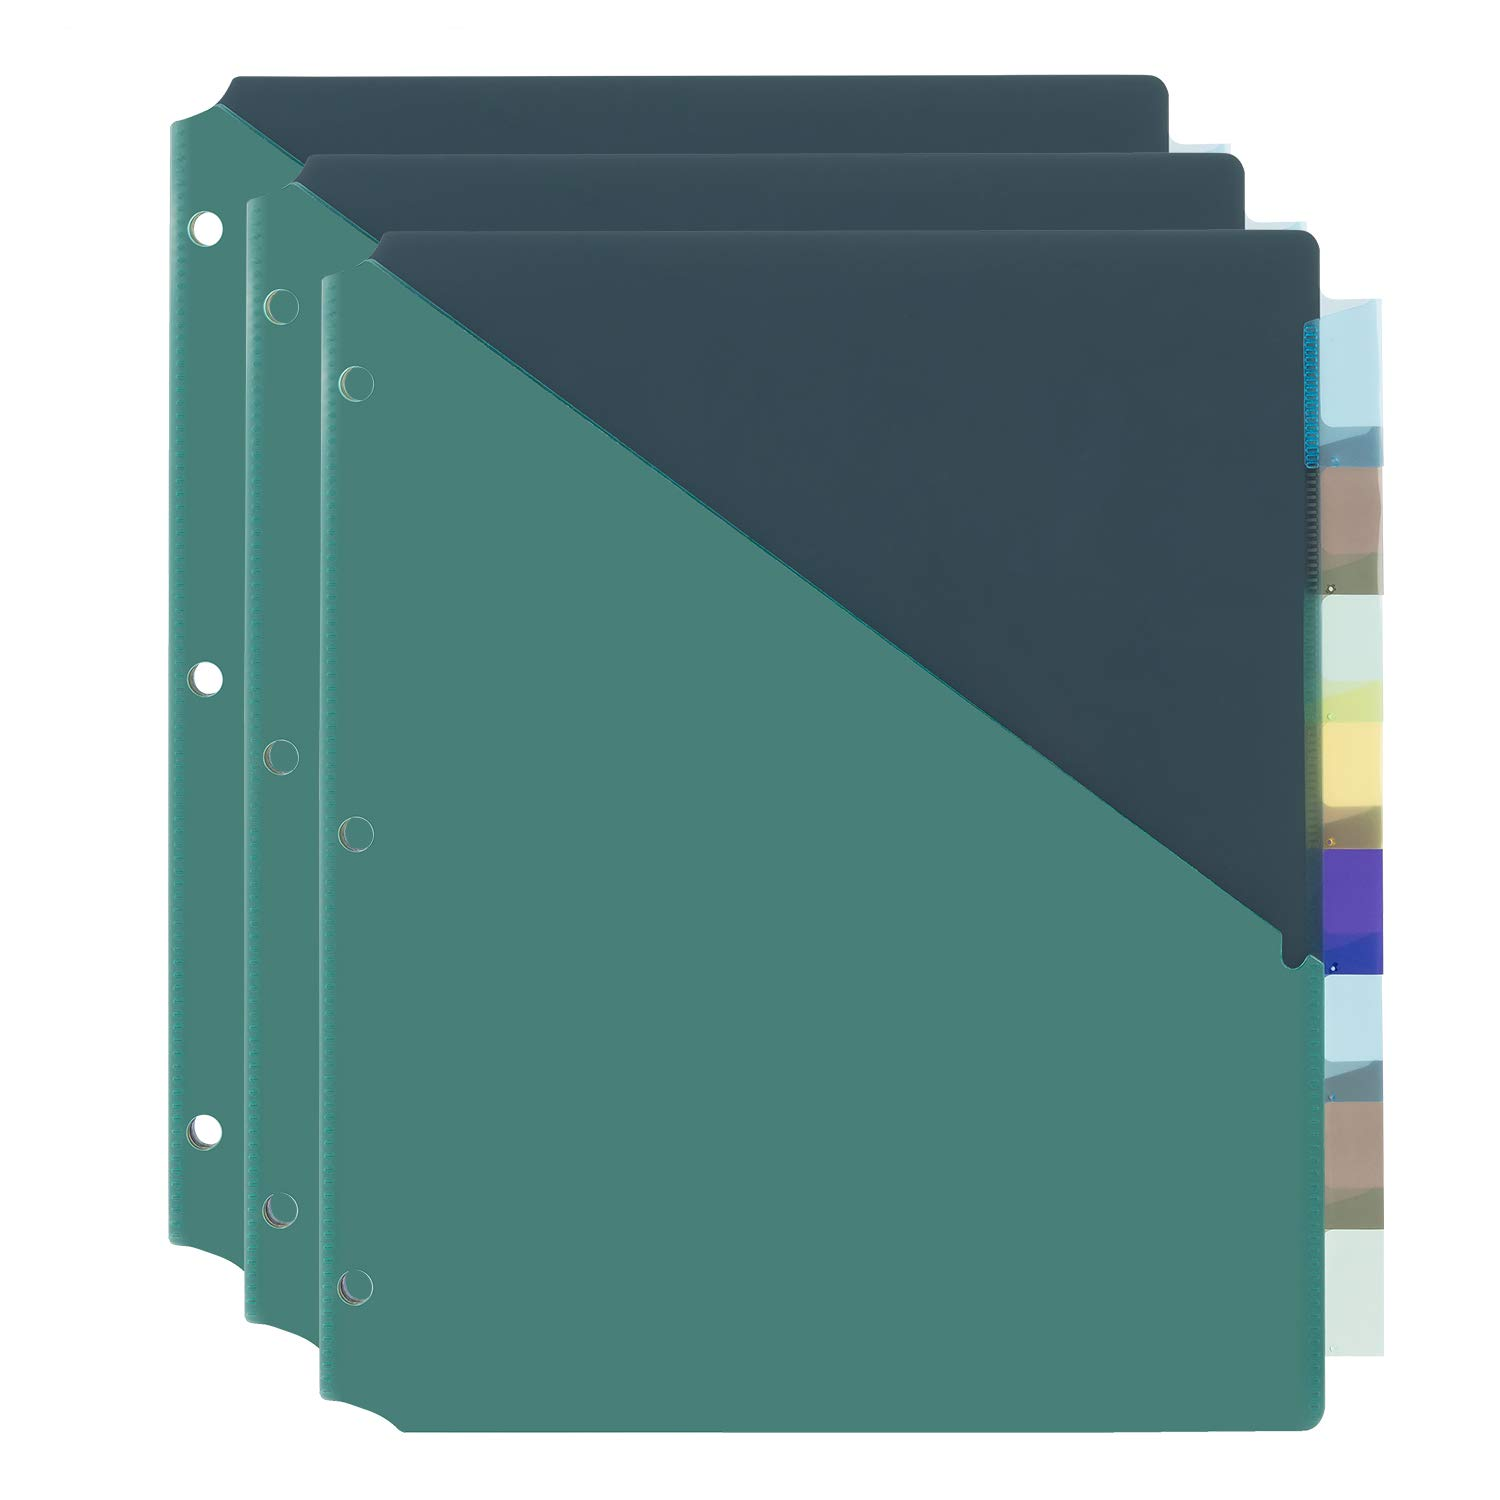 Amazon Basics 8-Tab Plastic Binder Dividers with Pockets, Two Tone, 3 Sets